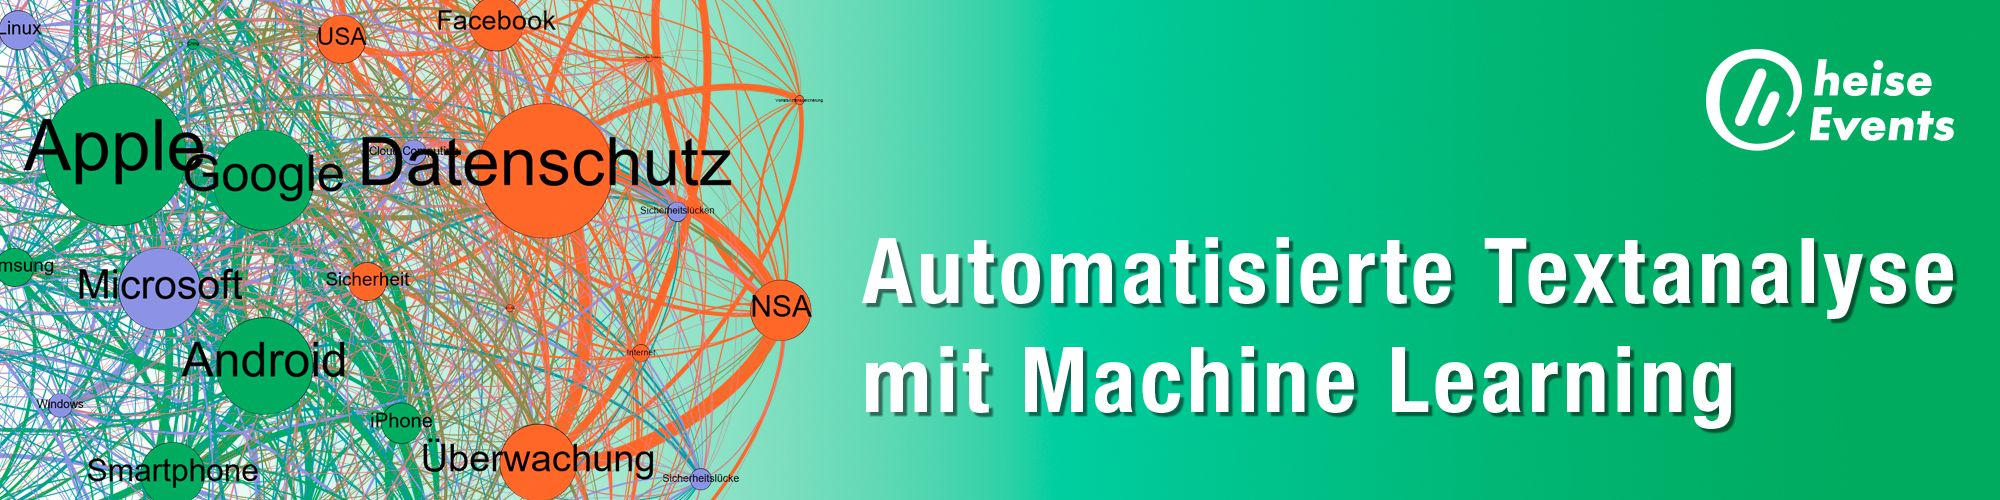 Automatisierte Textanalyse mit Machine Learning